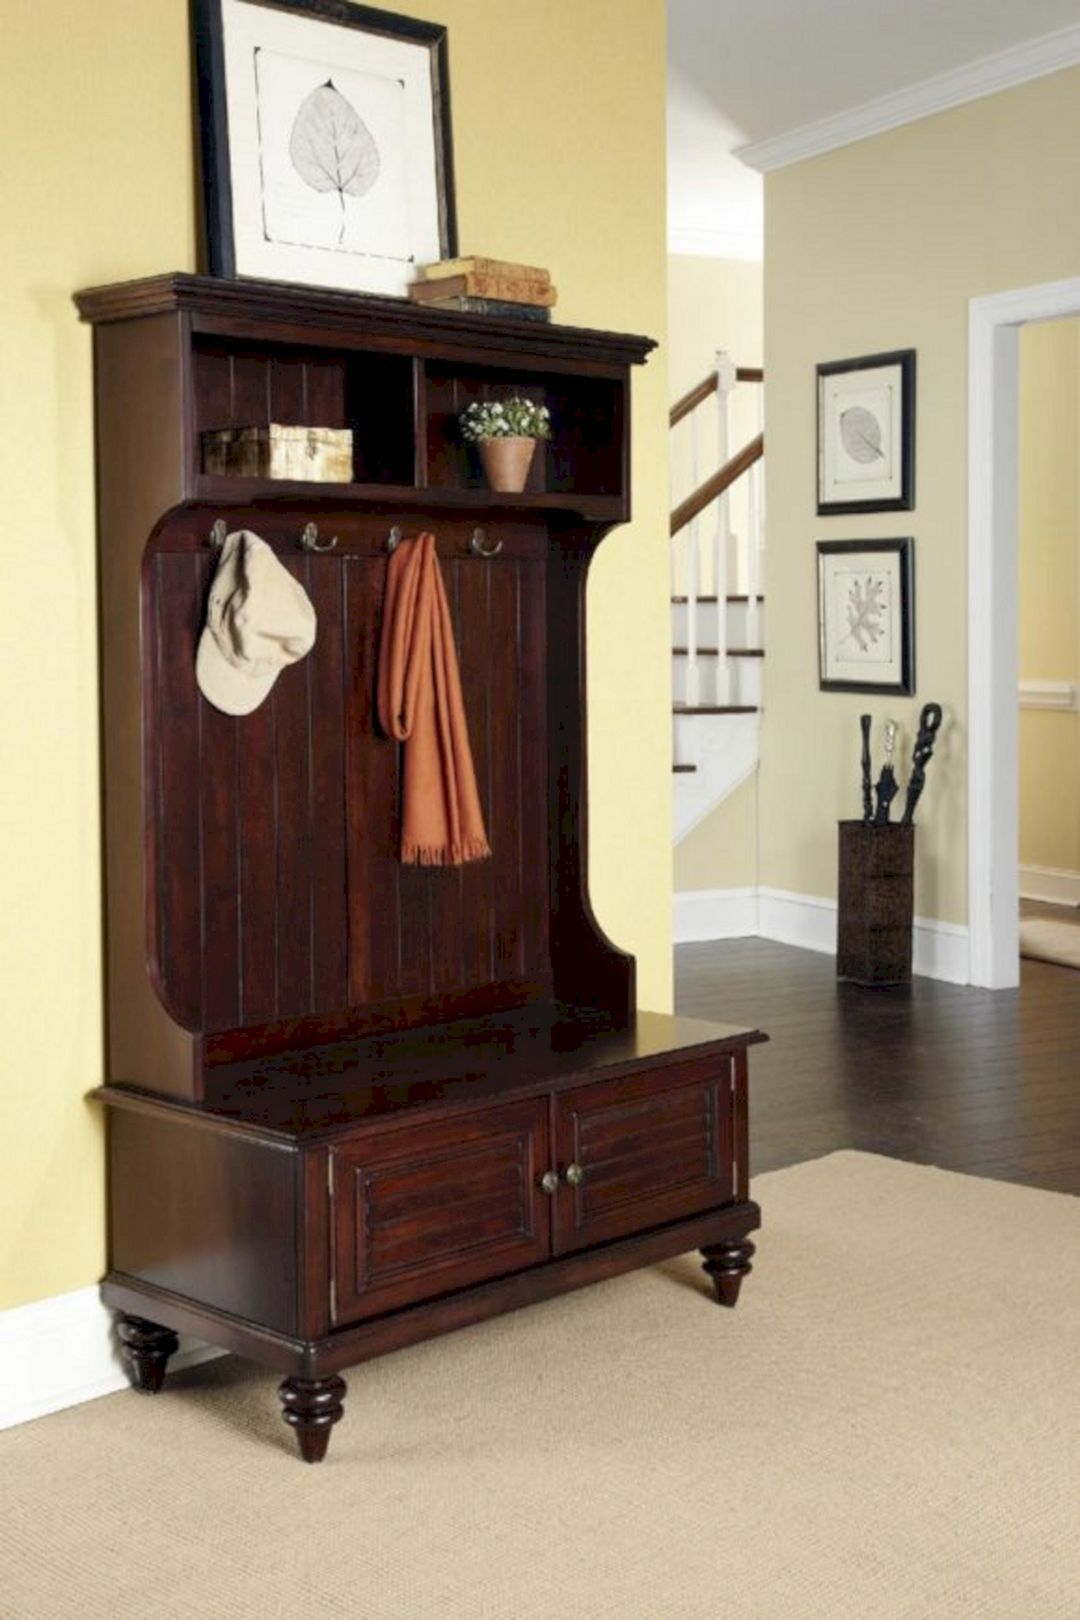 Hall-tree-storage-bench-furniture-1